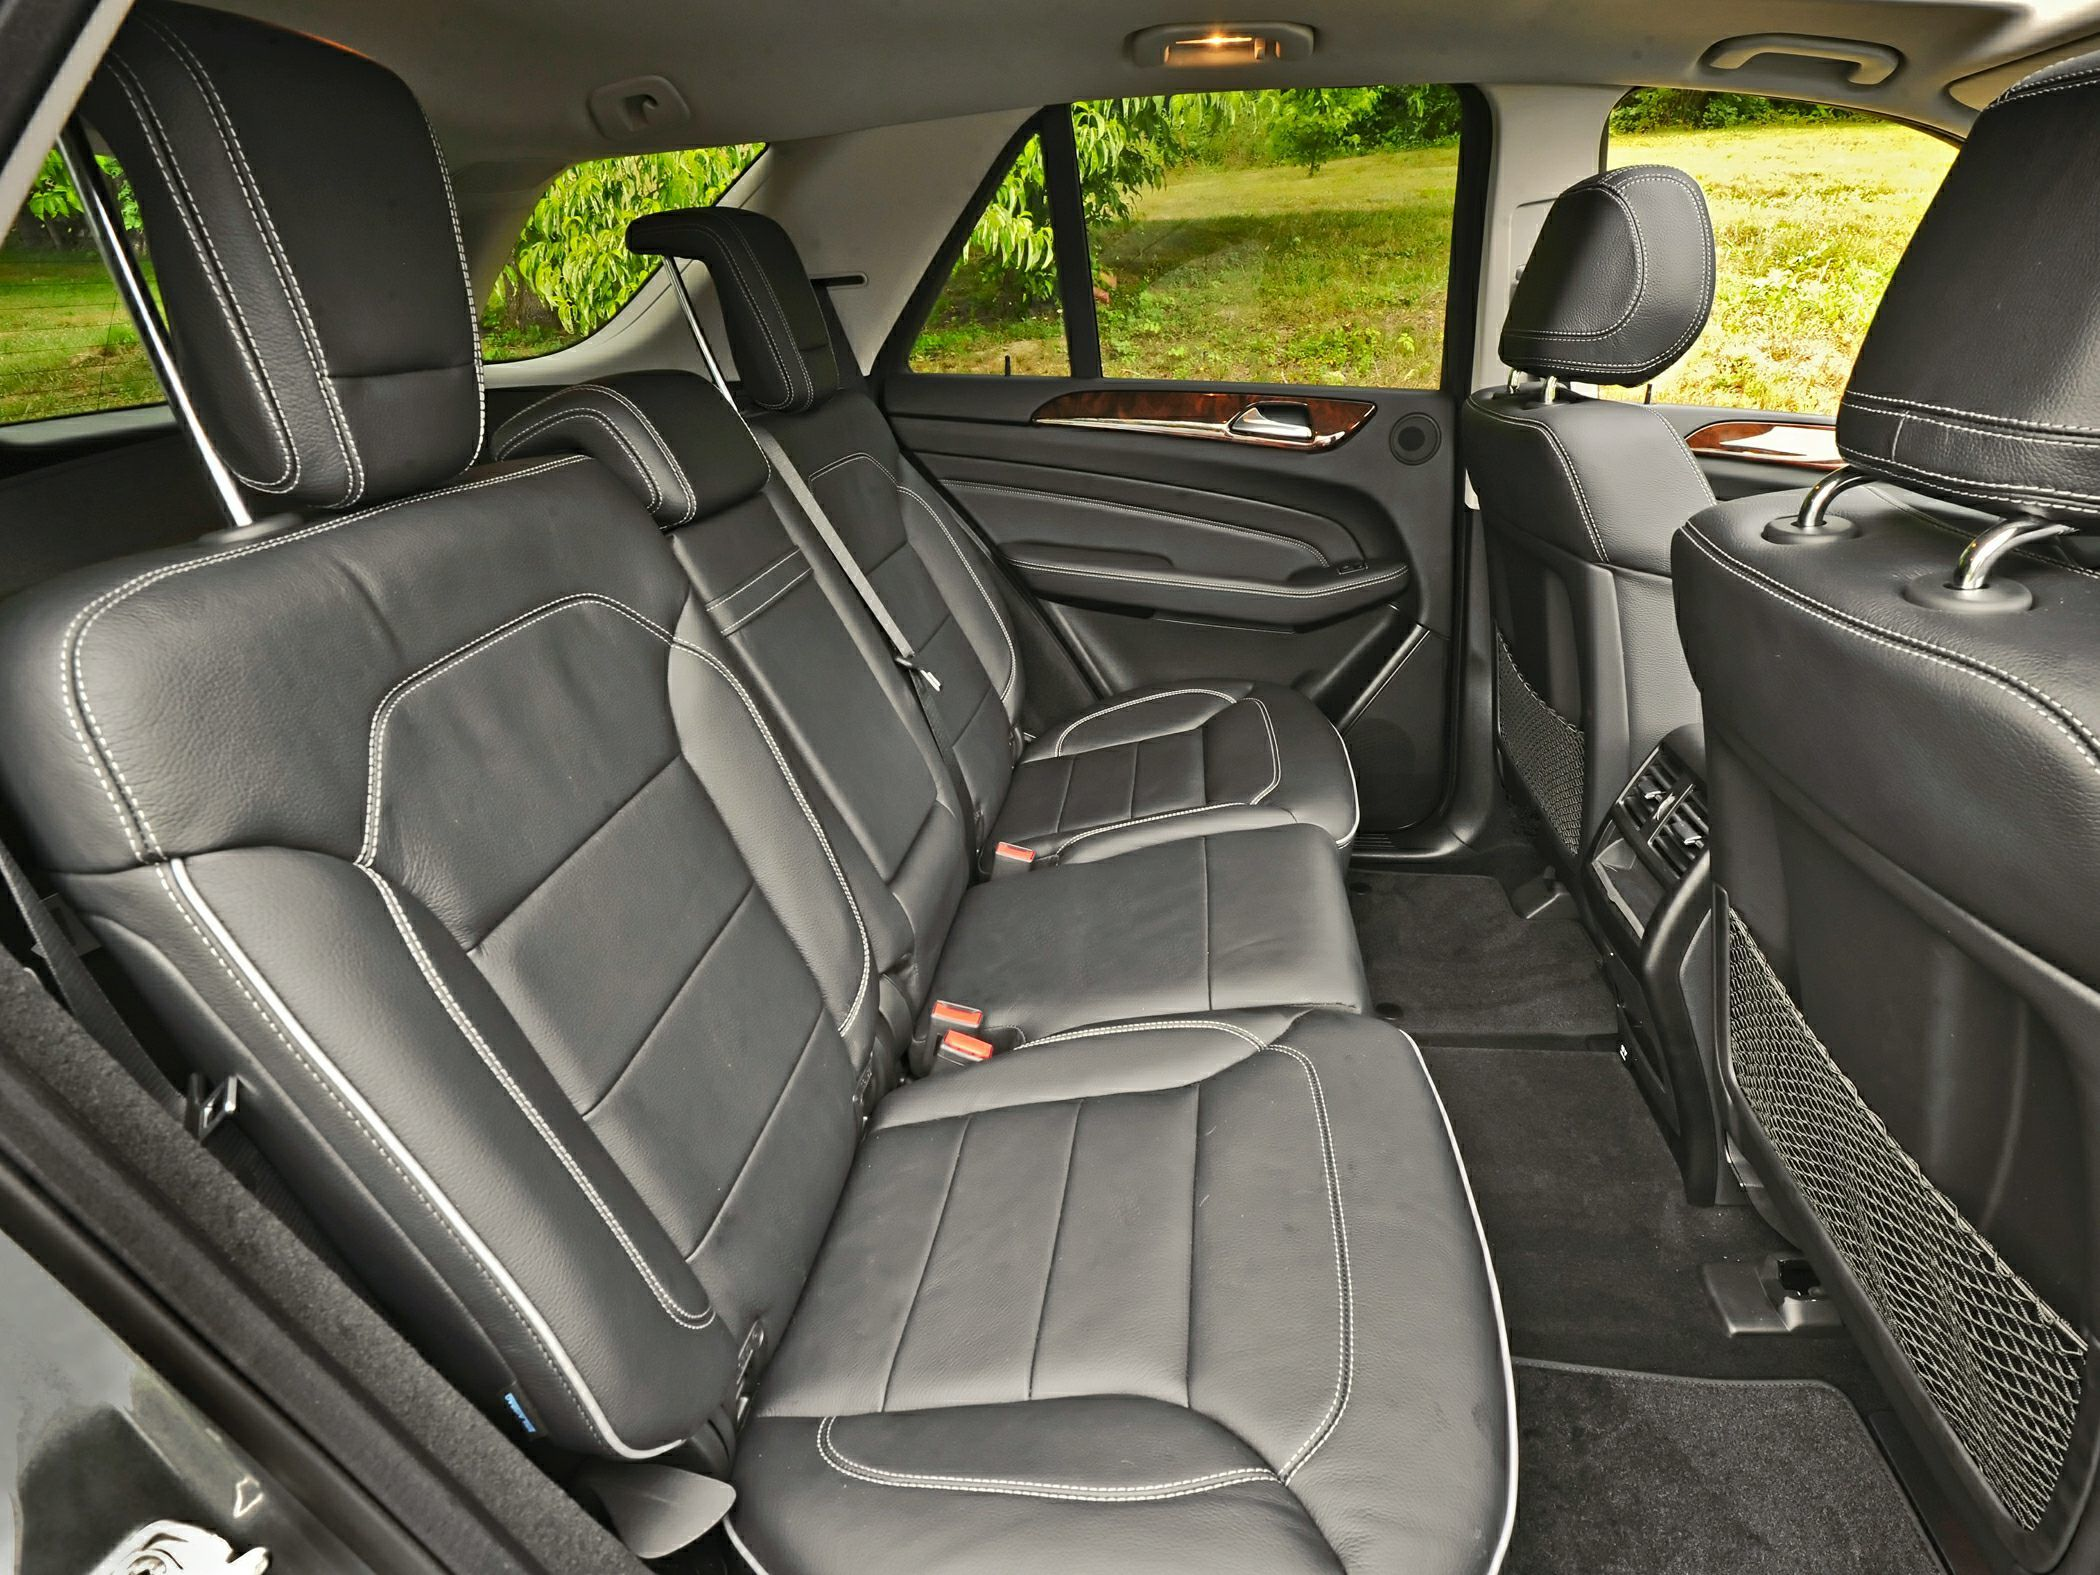 the backseat of the 2012 mercedenz benz m class suv is nice and spacious